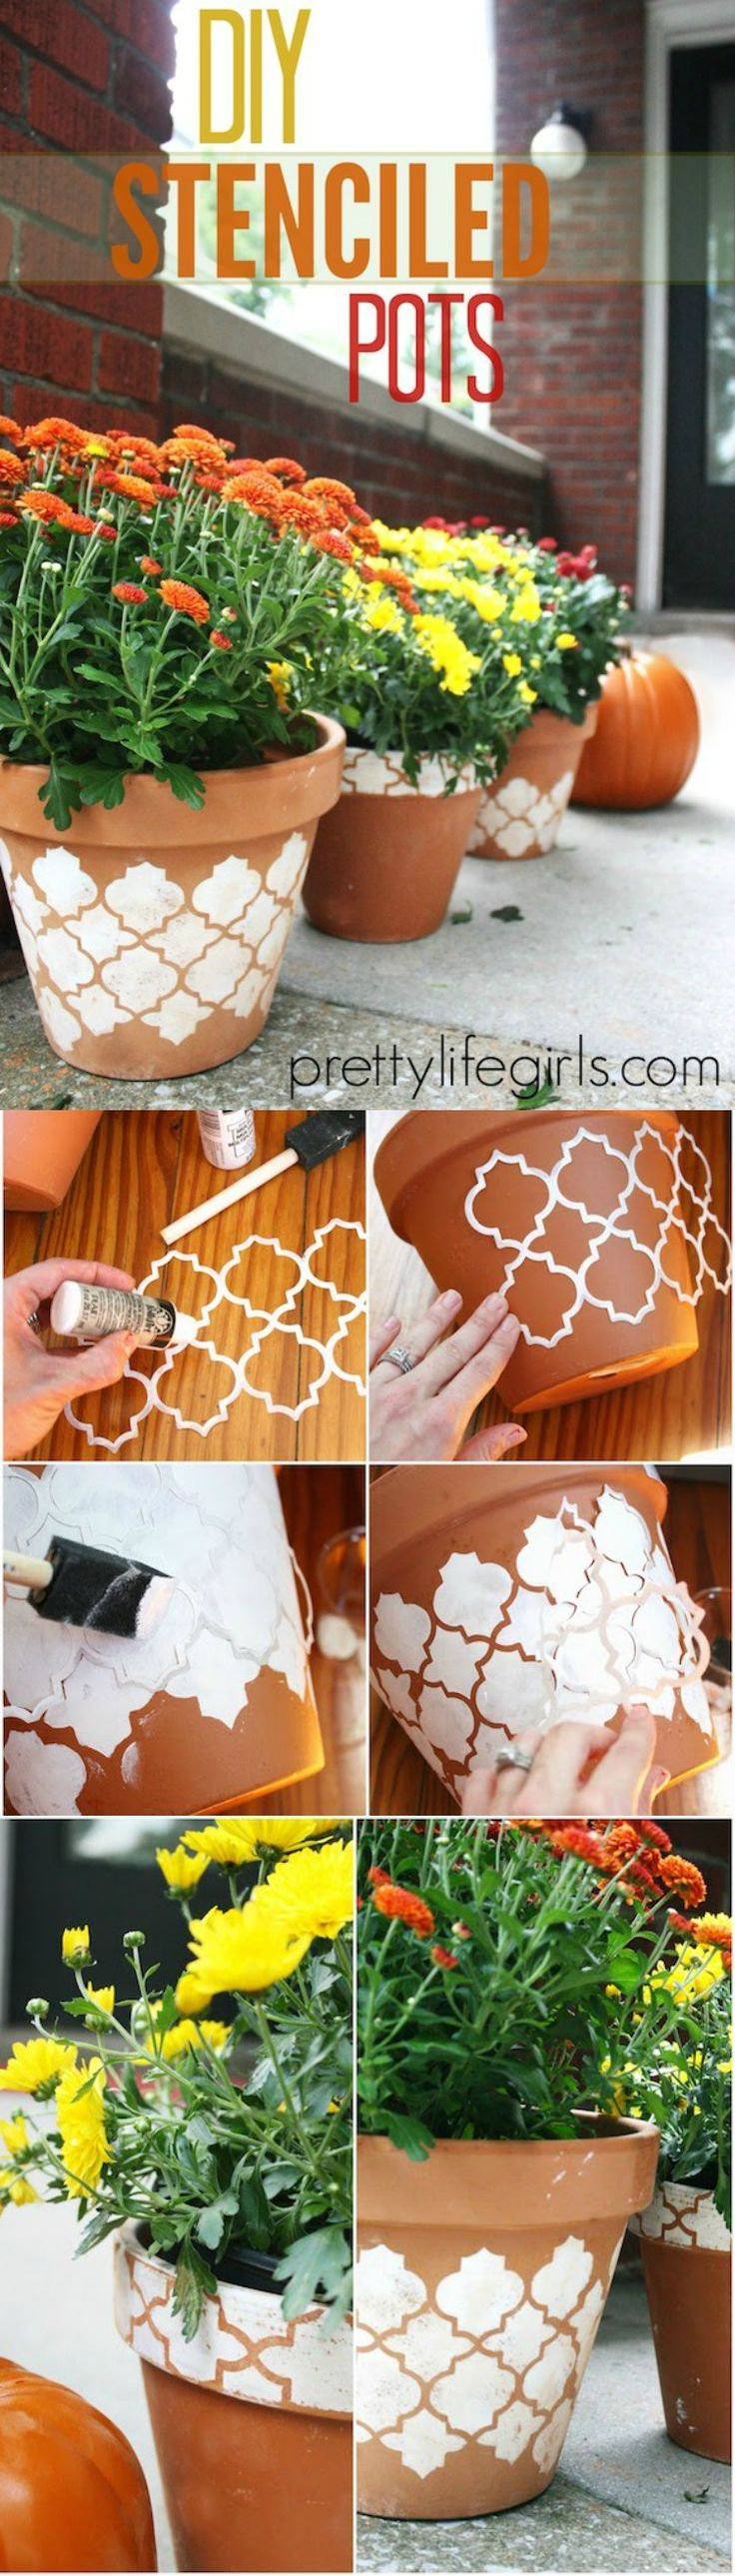 How to Stencil a Clay Pot